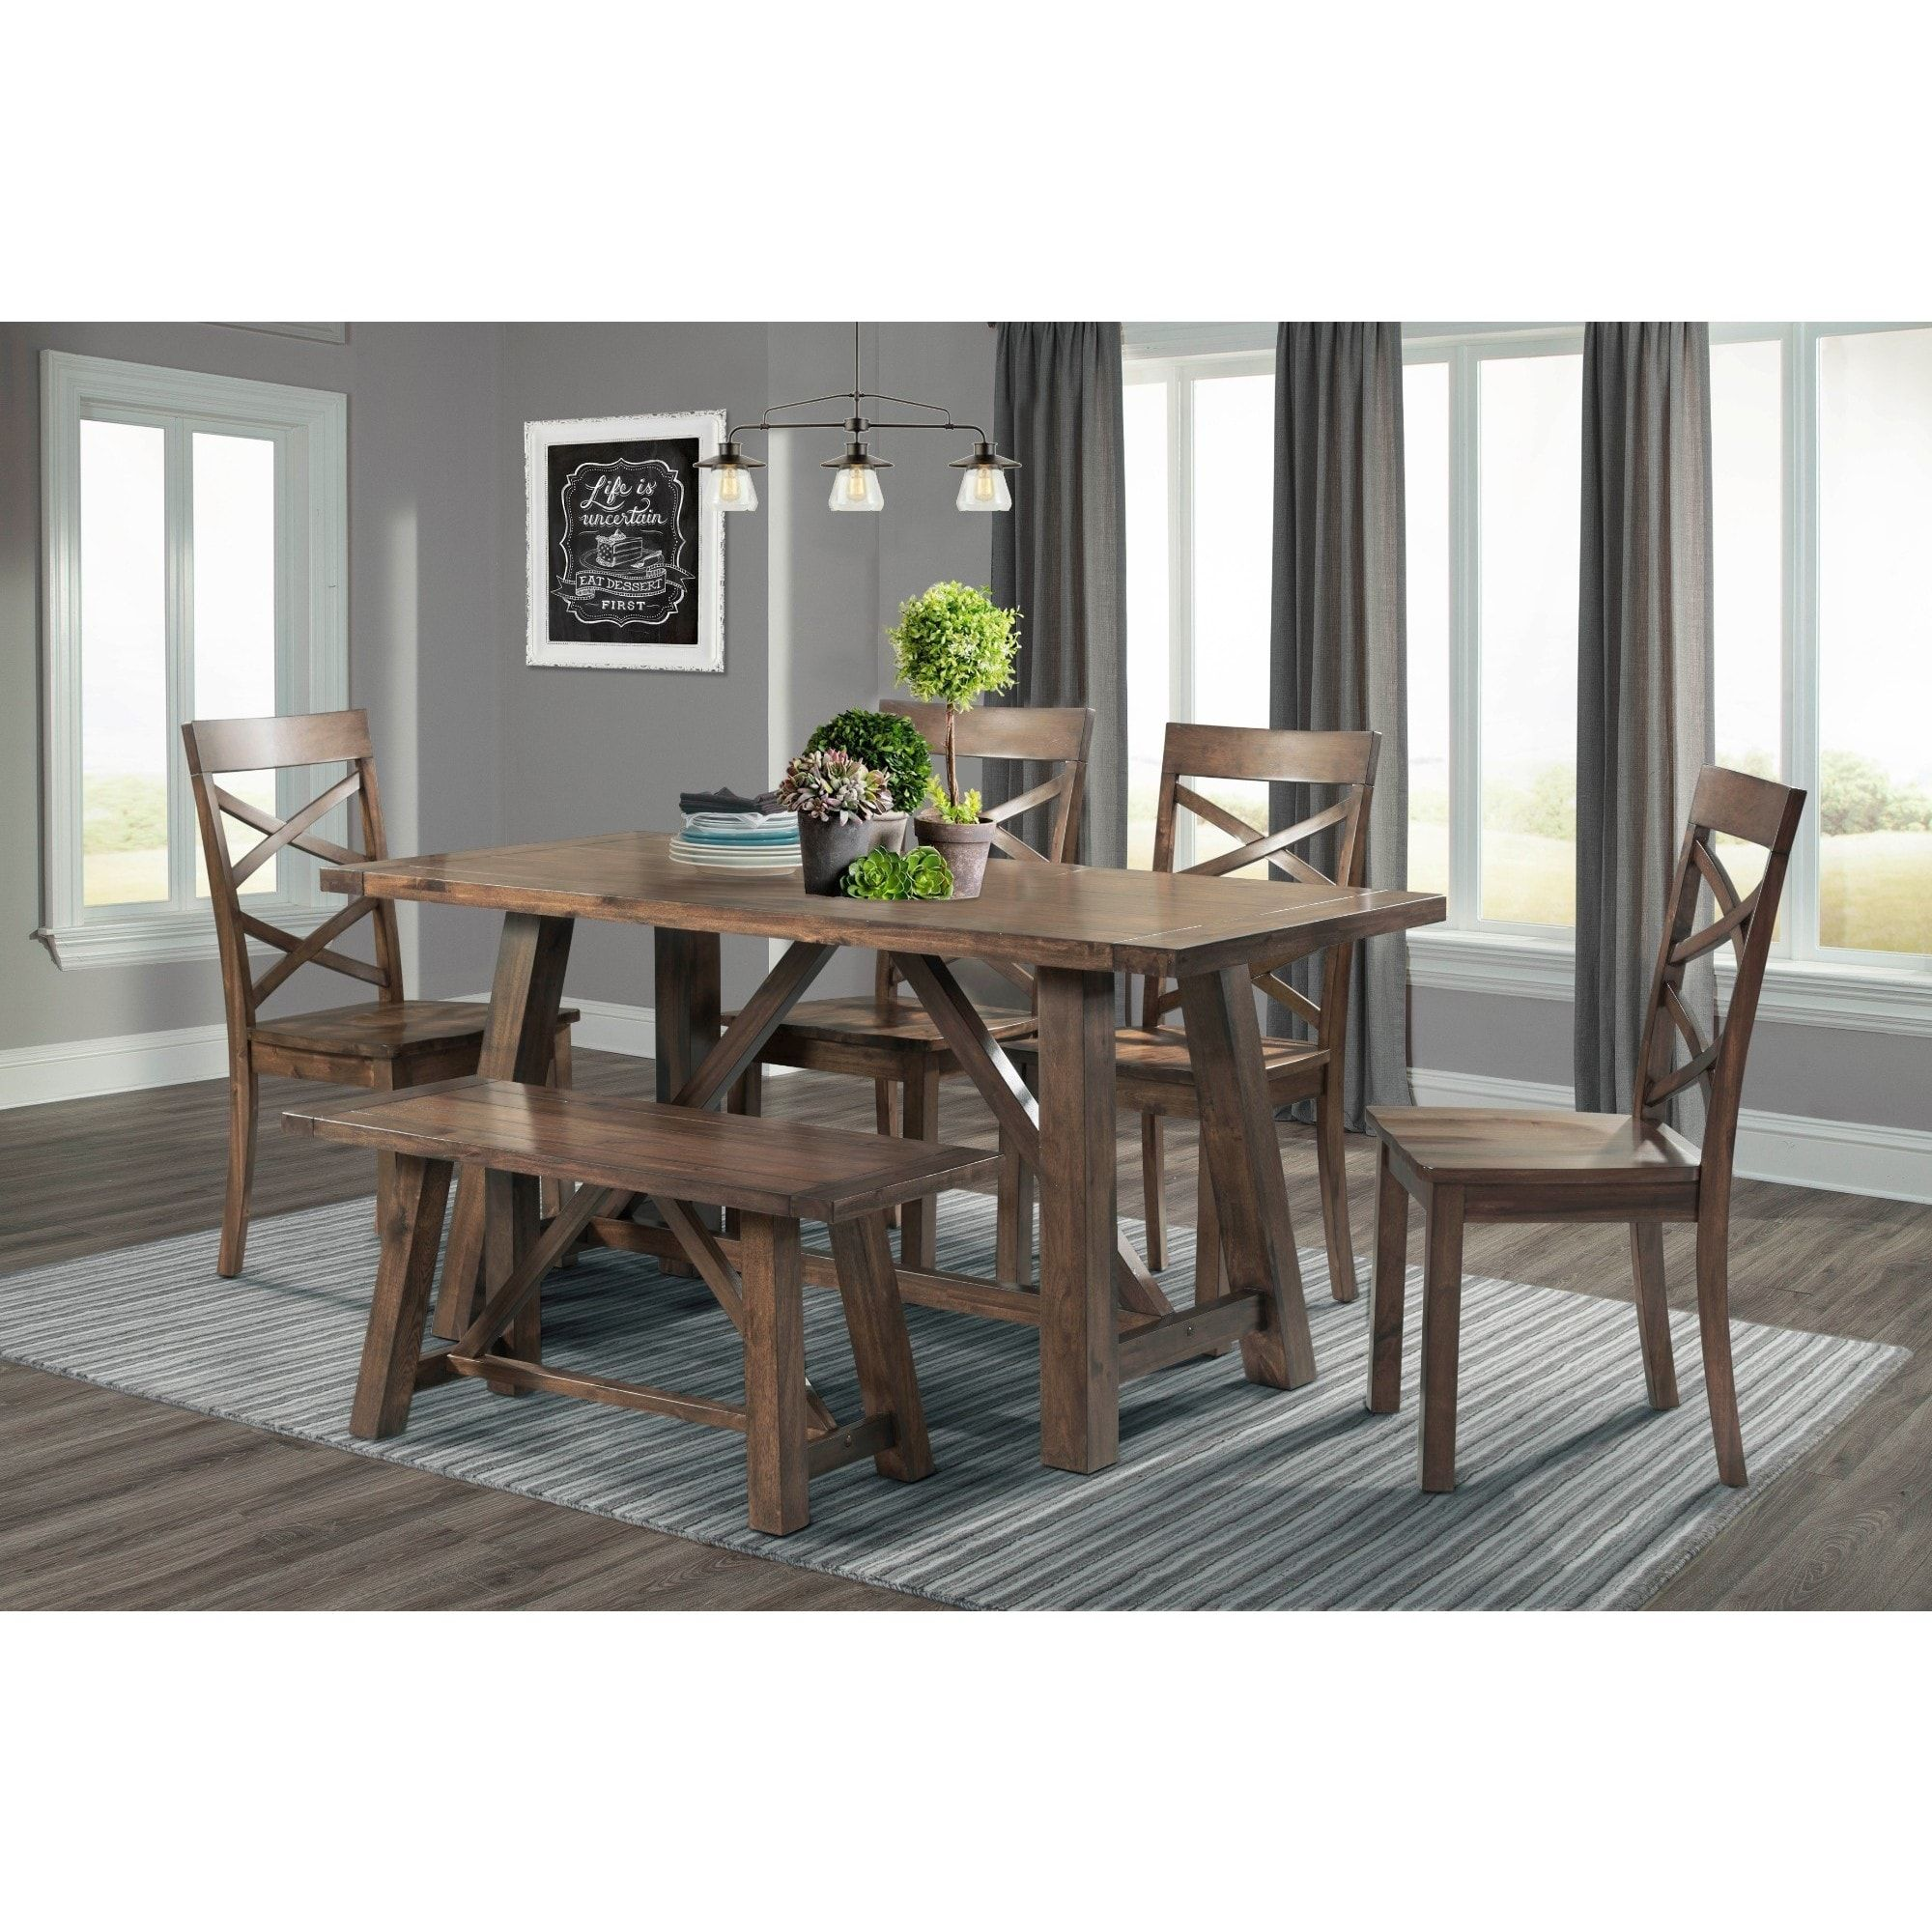 Delightful This Modern Farmhouse Table U0026 Bench Features Trestle Style Legs, While The  Dining Chairs Elevate This Set With Their Intricate ... Good Looking